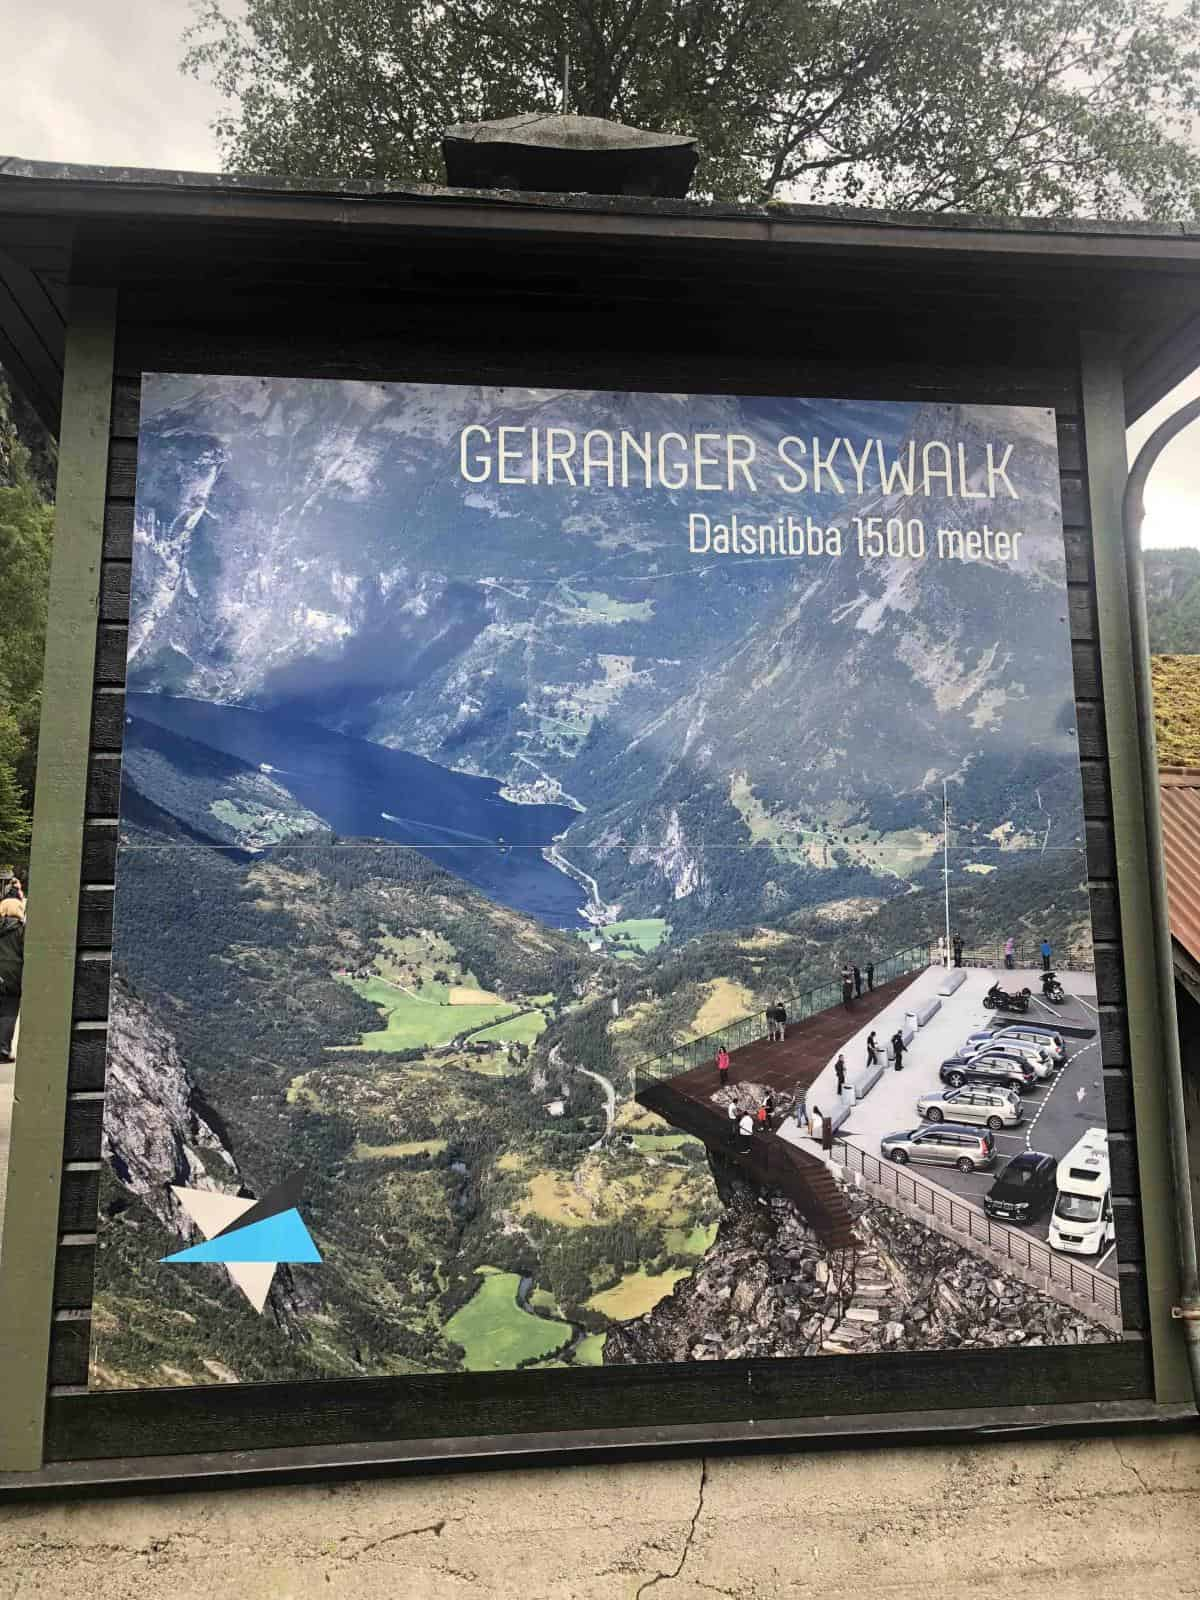 Geiranger Skywalk board